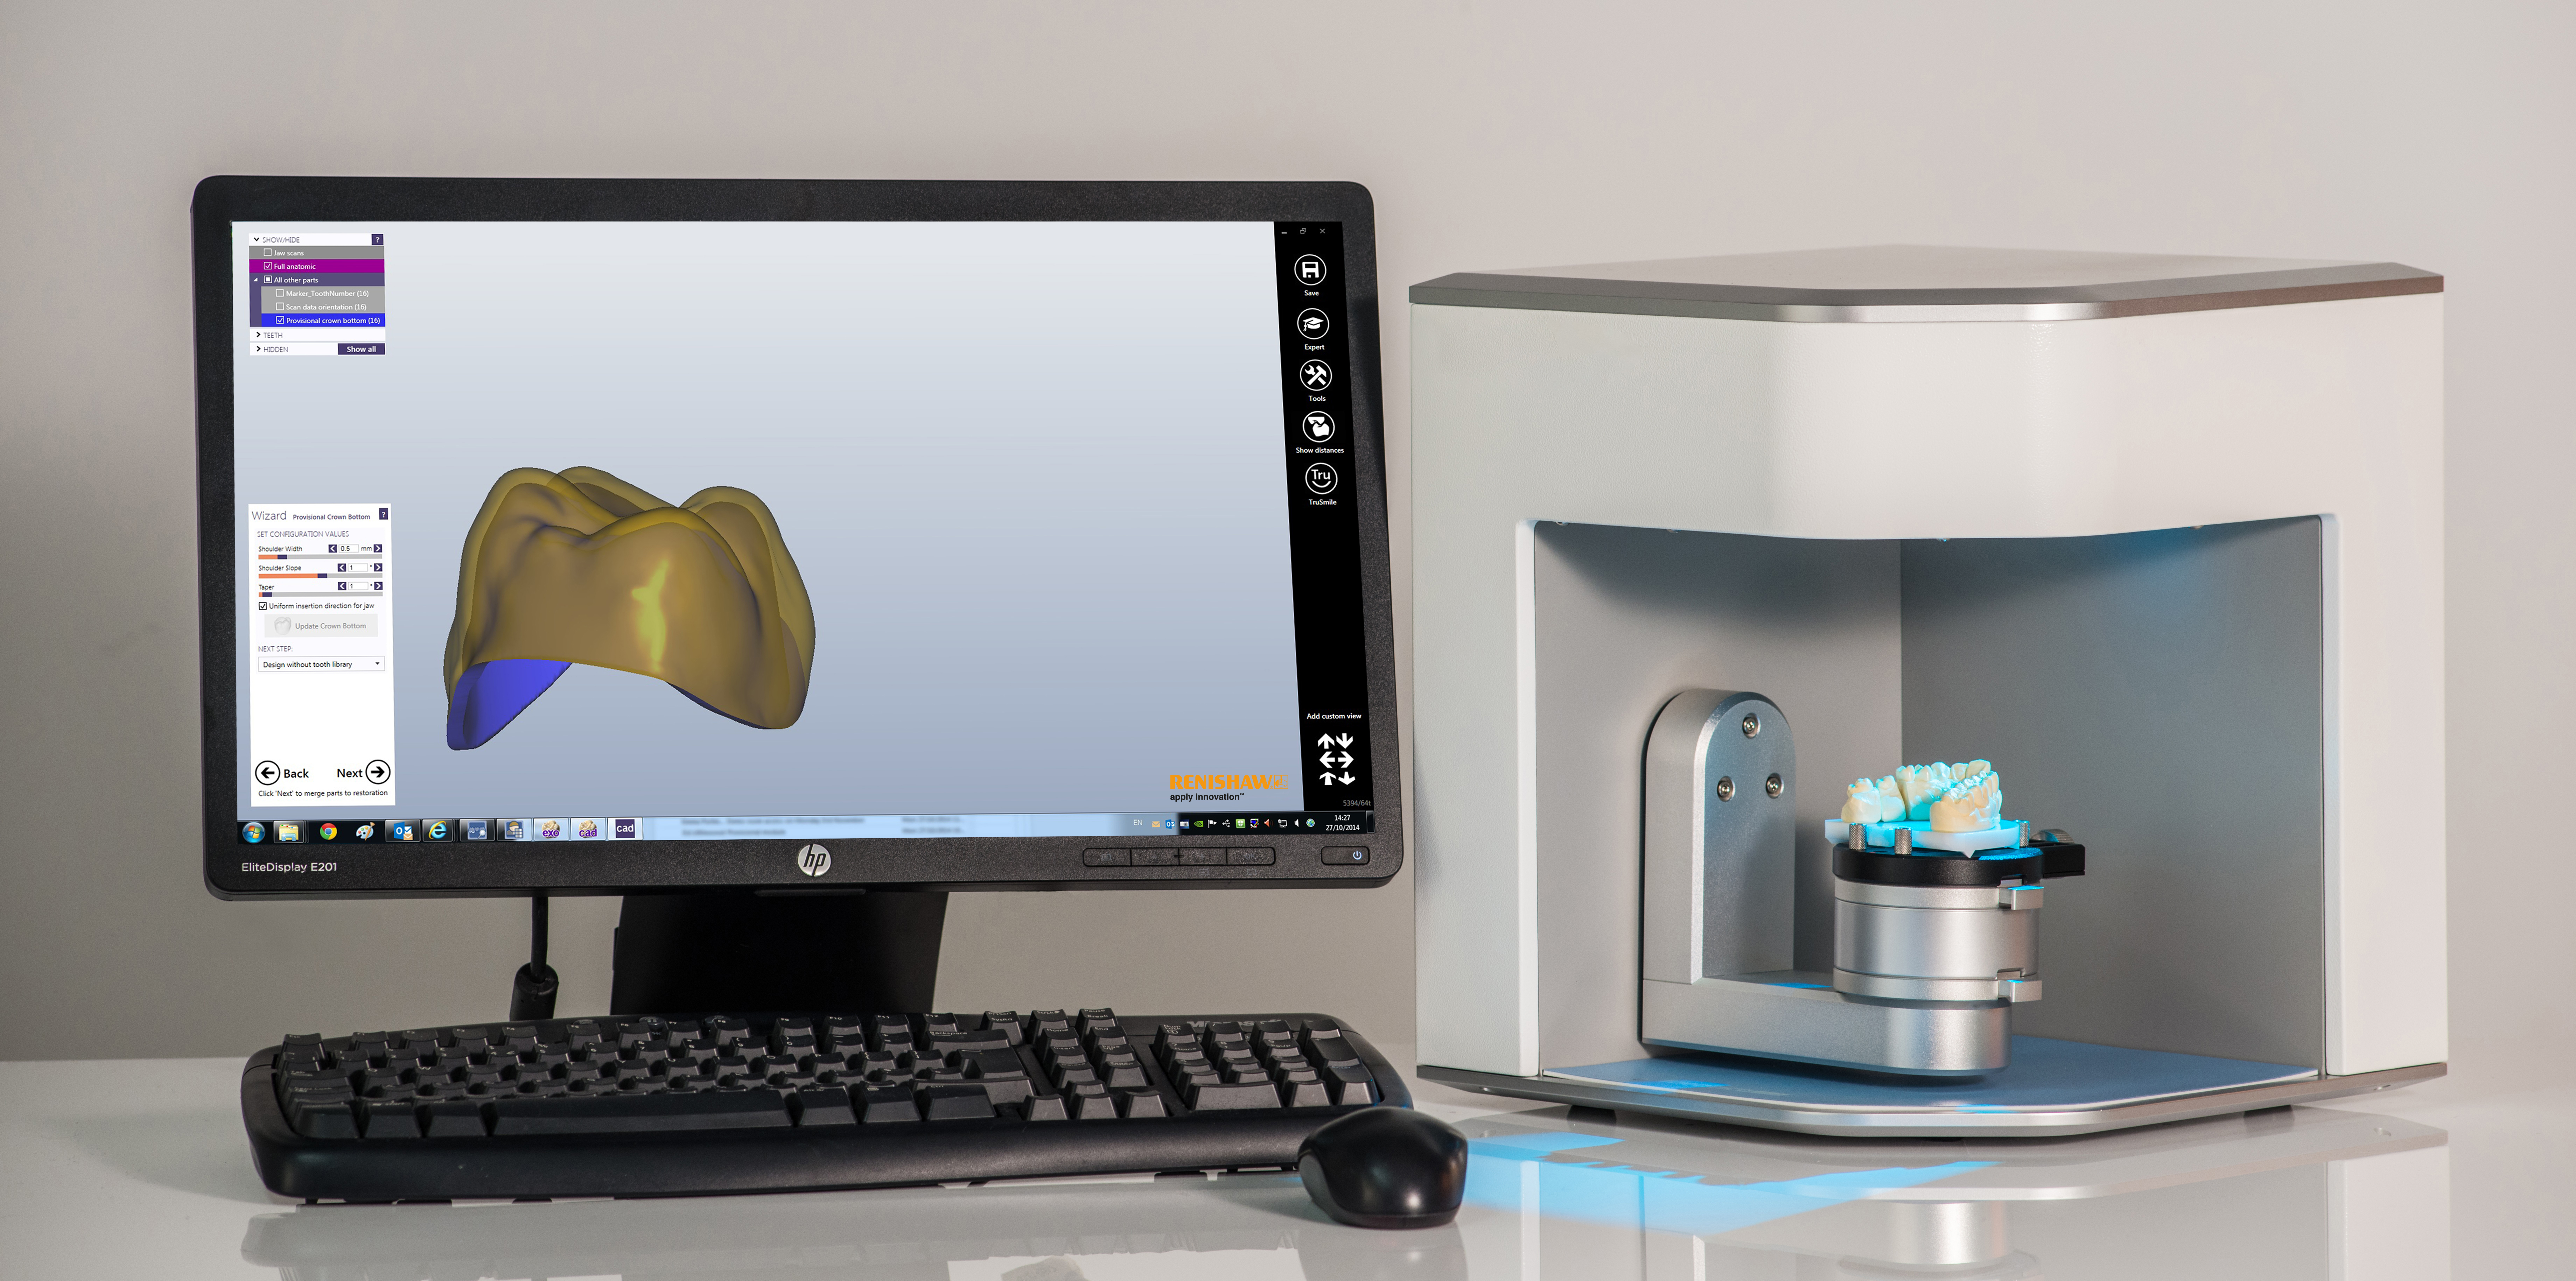 Medit scanner coupled with Renishaw Dental Studio (RDS) for design